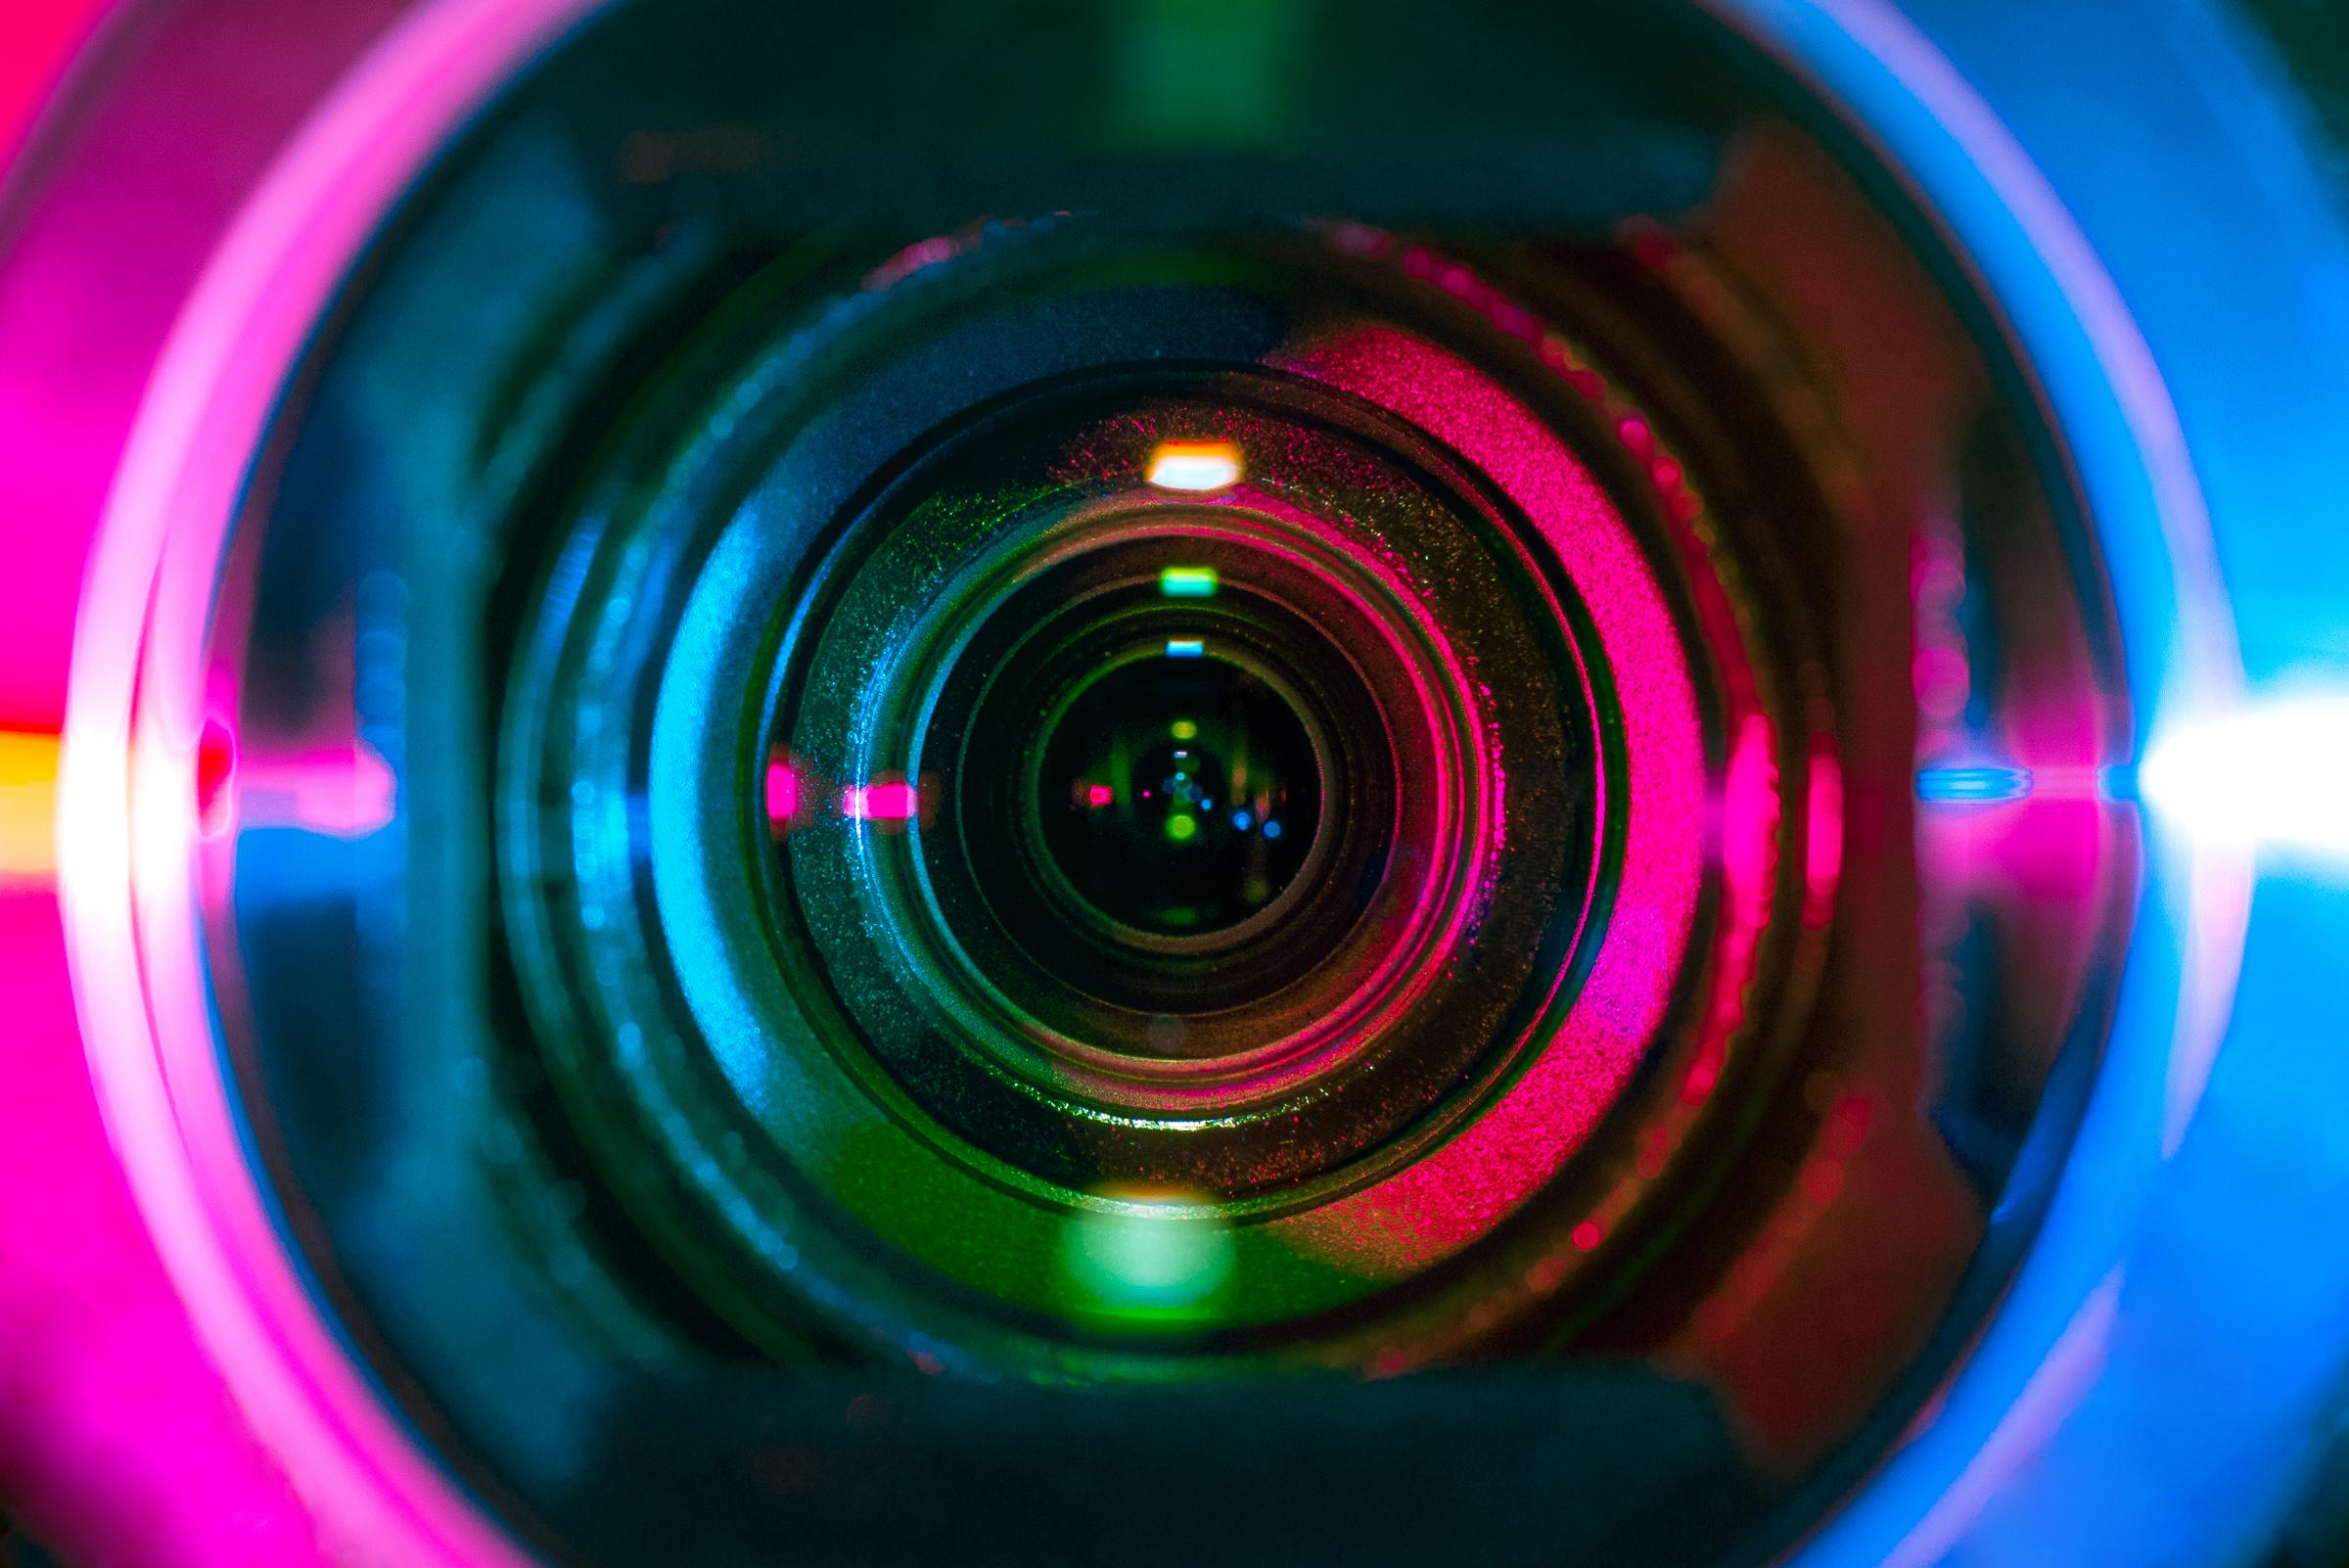 Video camera lens lit by different color light sources.